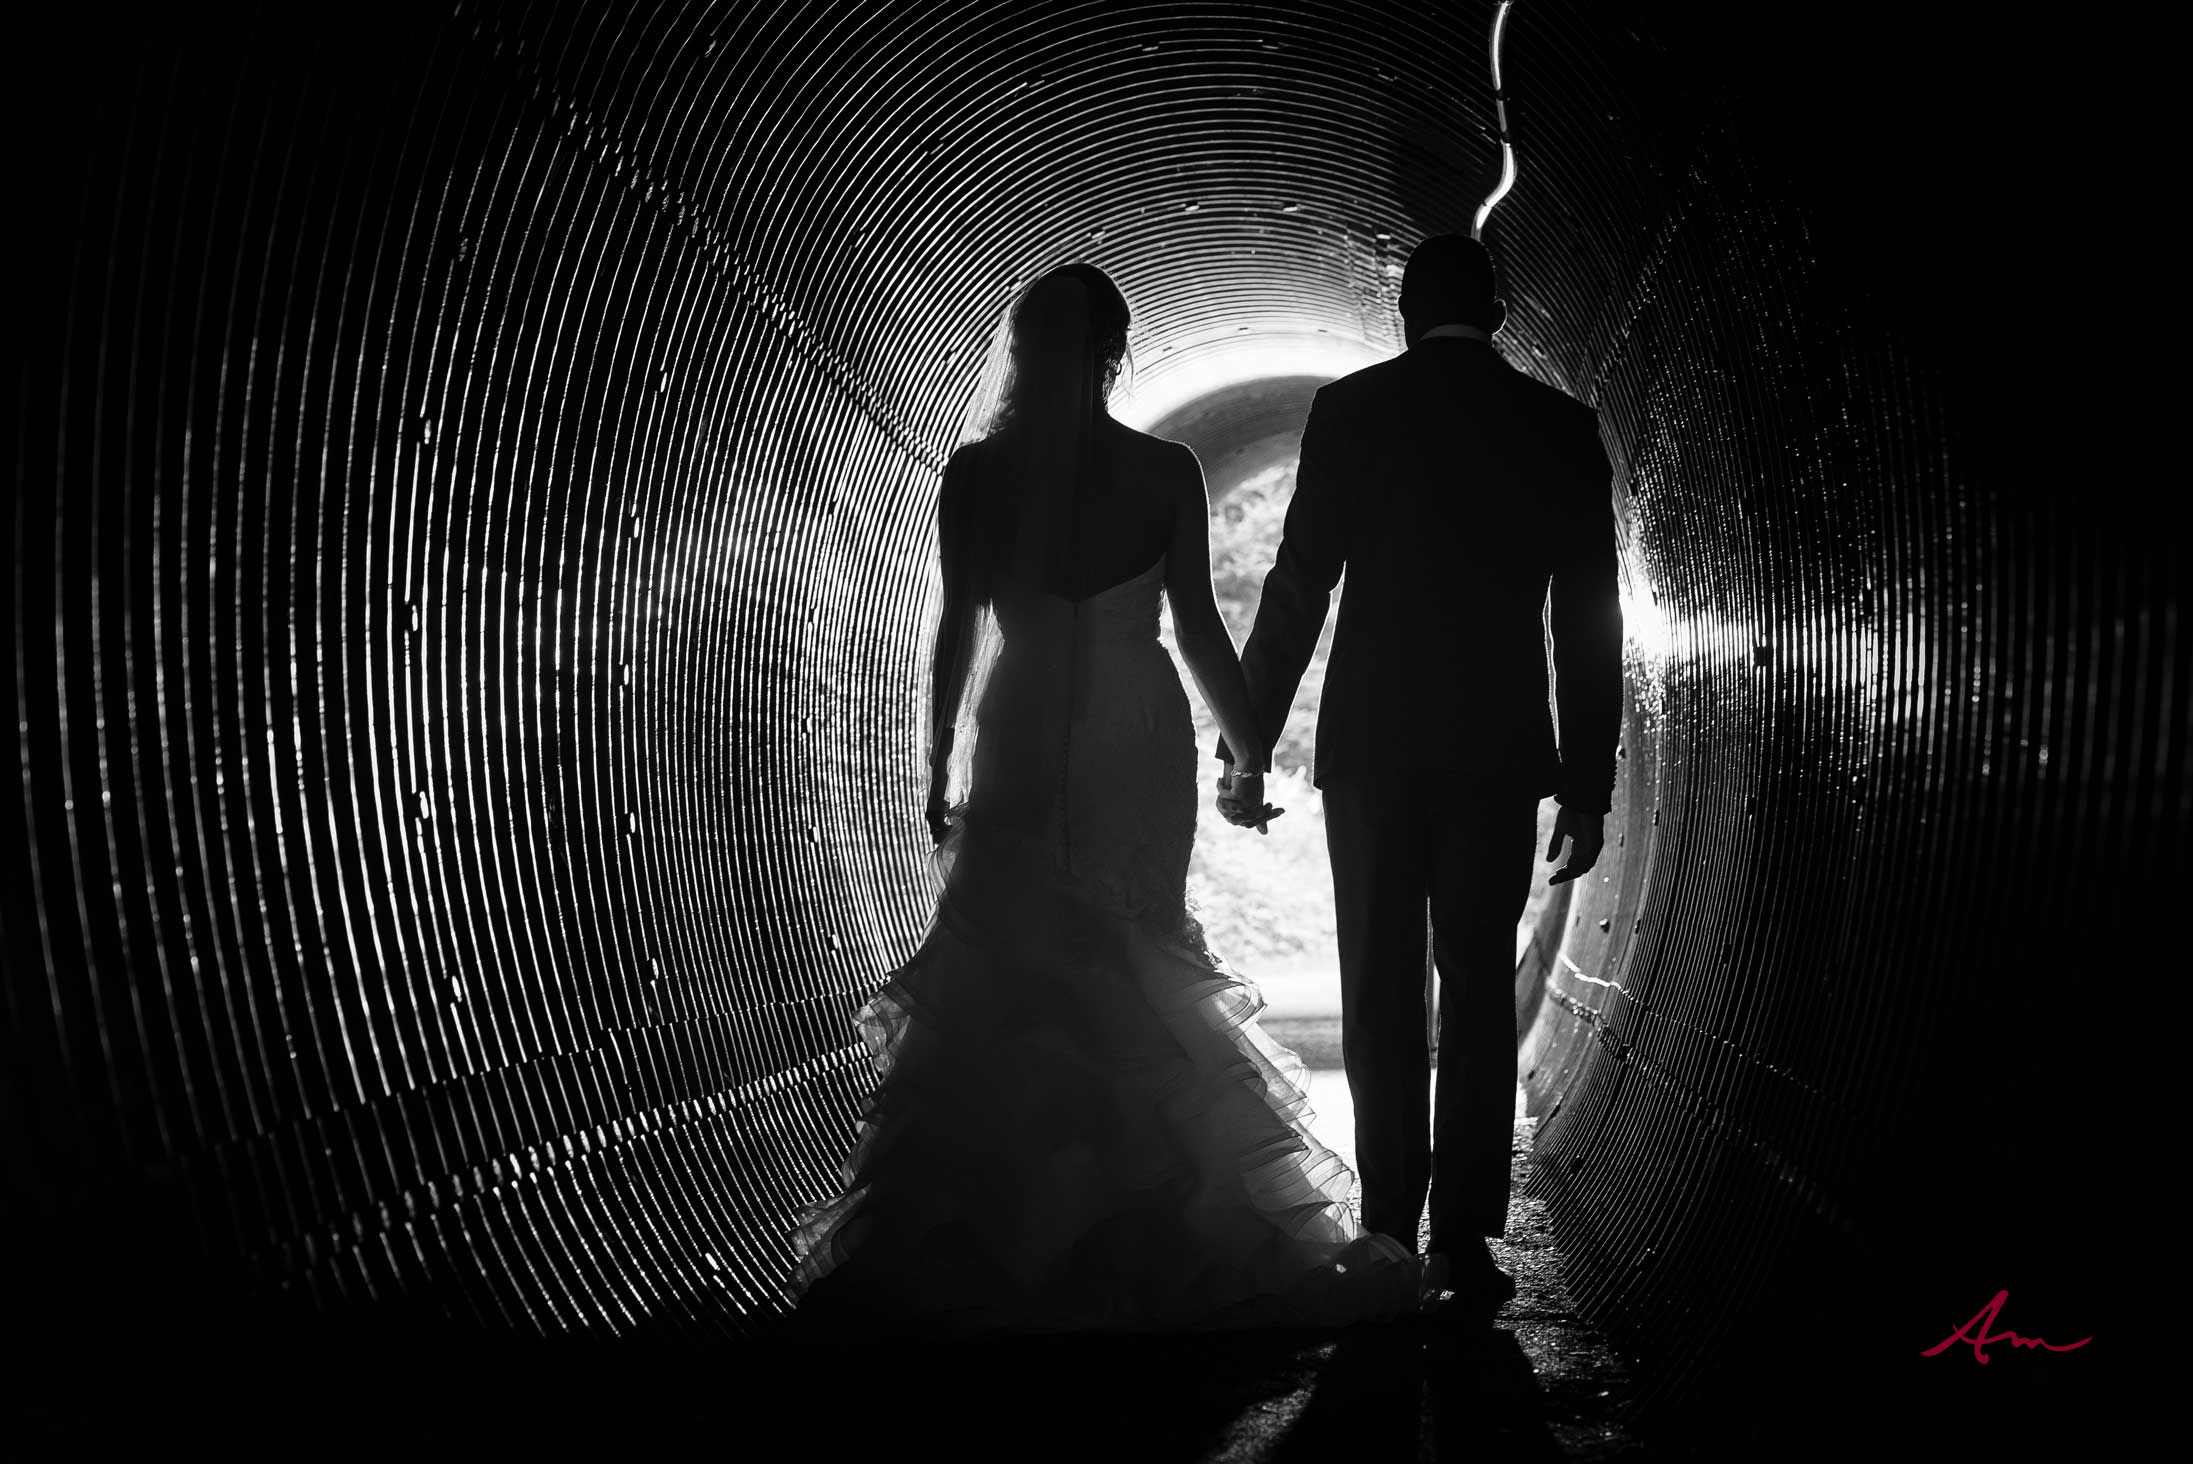 Liscombe-wedding-bride-groom-tunnel.jpg